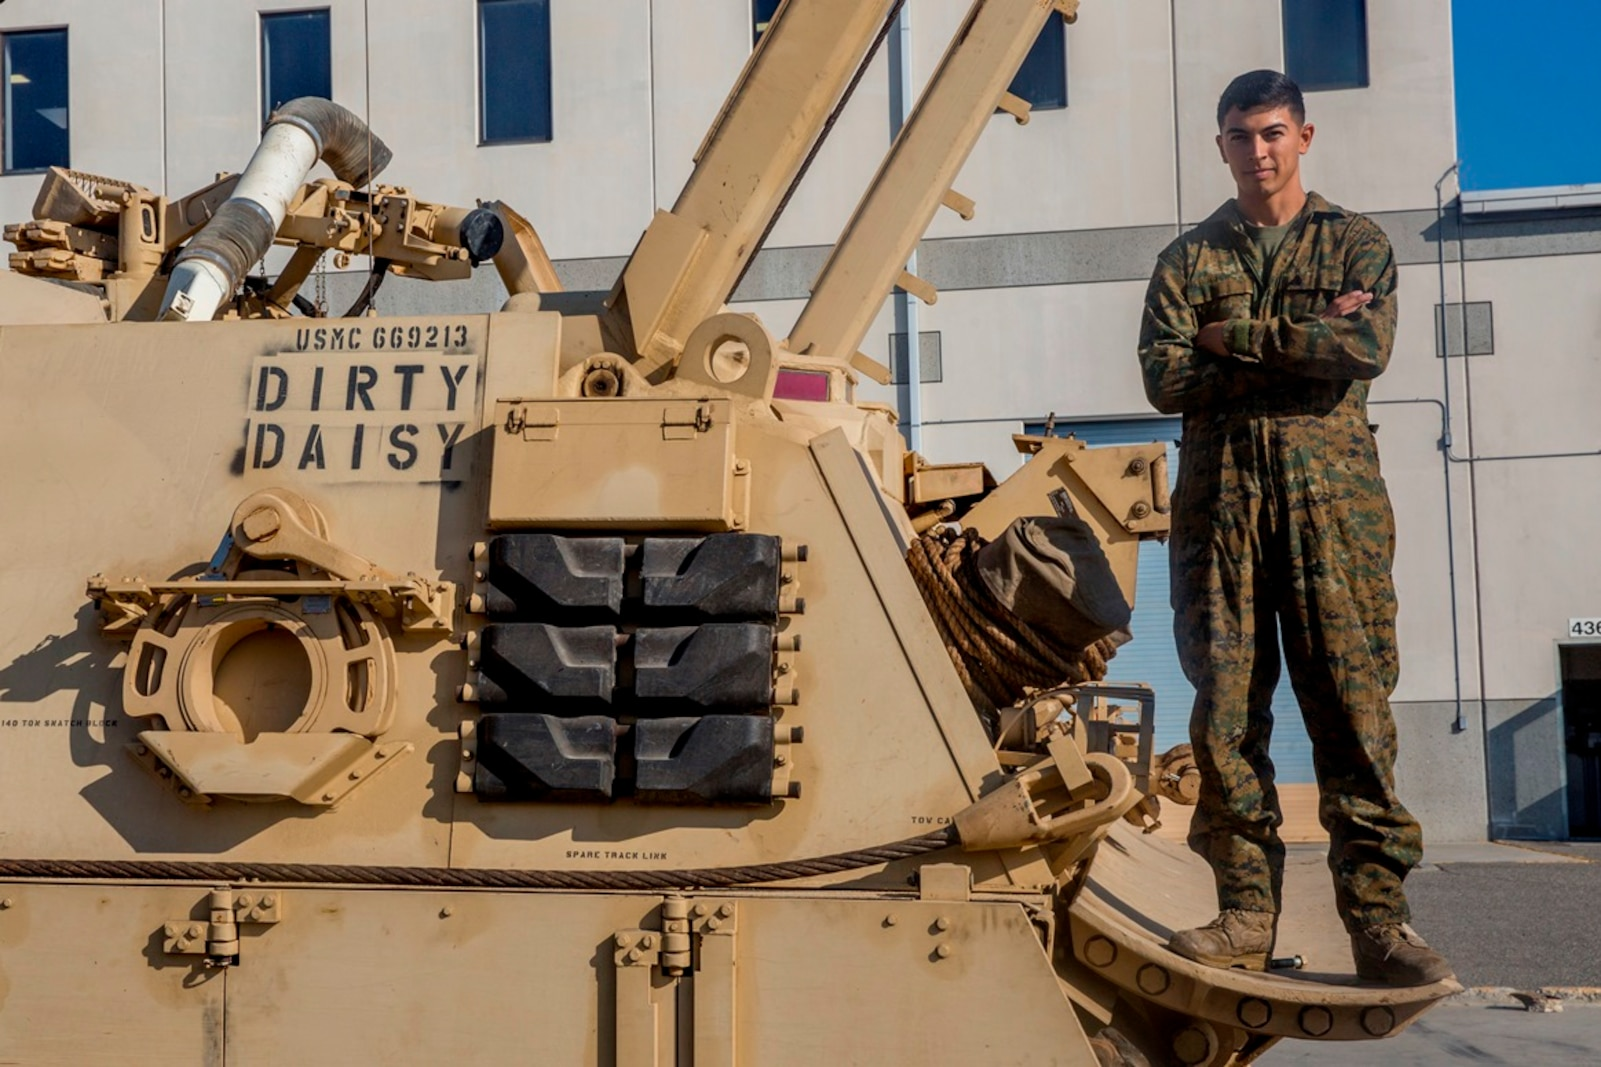 Cpl. Calletano Jimenez stands on the M88A2 Hercules Recovery Vehicle he maintains at Camp Pendleton, Calif., Aug, 31, 2016. Jimenez is a tank mechanic with 1st Maintenance Battalion, Combat Logistics Regiment 15, 1st Marine Logistics Group who was recently awarded the Maintenance Marine of the Year Award by the Ground Ordnance Maintenance Association for his outstanding achievements in maintenance of military equipment and weapon systems. (U.S. Marine Corps photo by Lance Cpl. Kyle McNan/released)